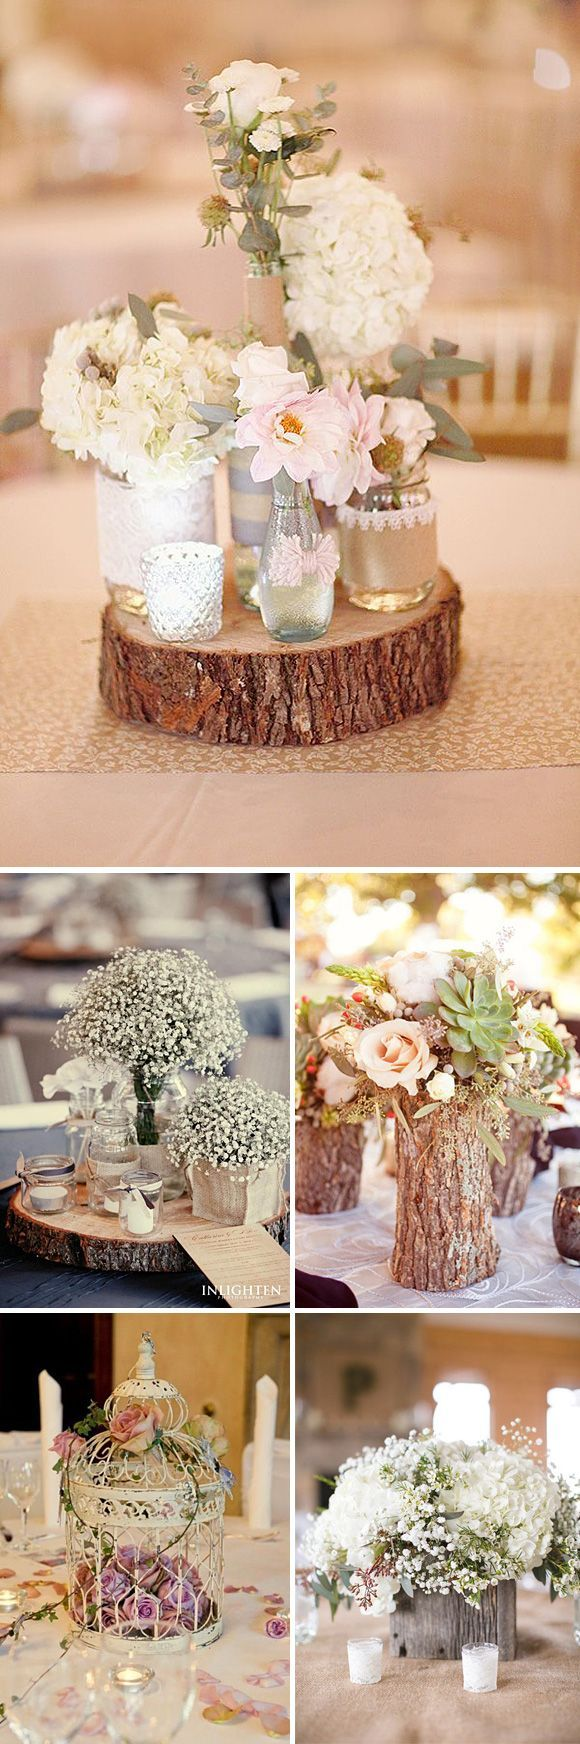 Gorgeous Rustic Ceterpieces that are smple and understated yet elegant. [www.belmontcountryclub.com/weddings] Ashburn, VA